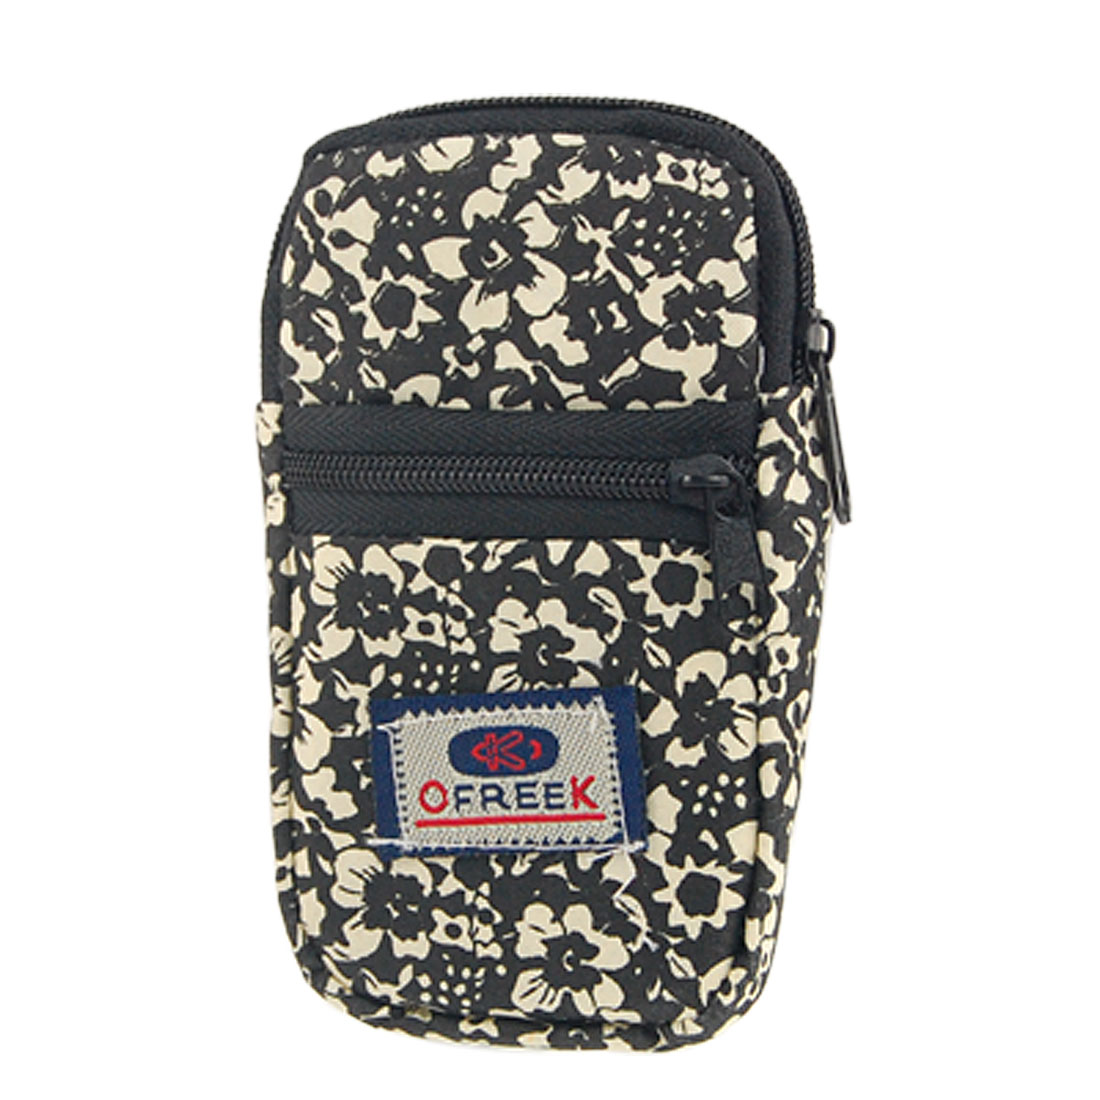 Mobile Phone Black Beige Floral Bag Zip Up Wristband Pouch